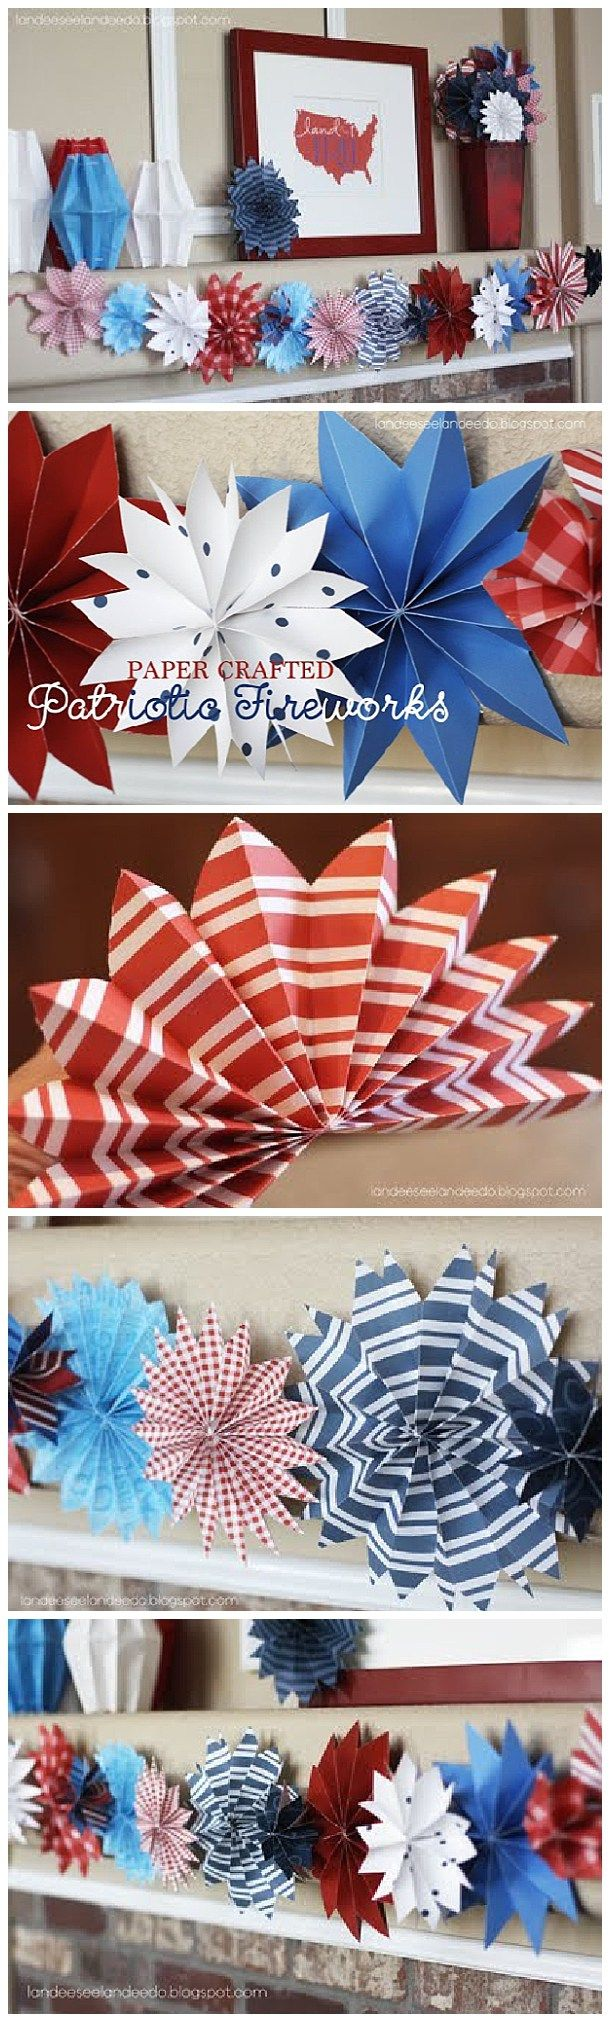 Scrapbook paper dollar general - Diy Easy Paper Crafted 4th Of July Fireworks Decorations Go Through Your Scrapbook Paper Stash